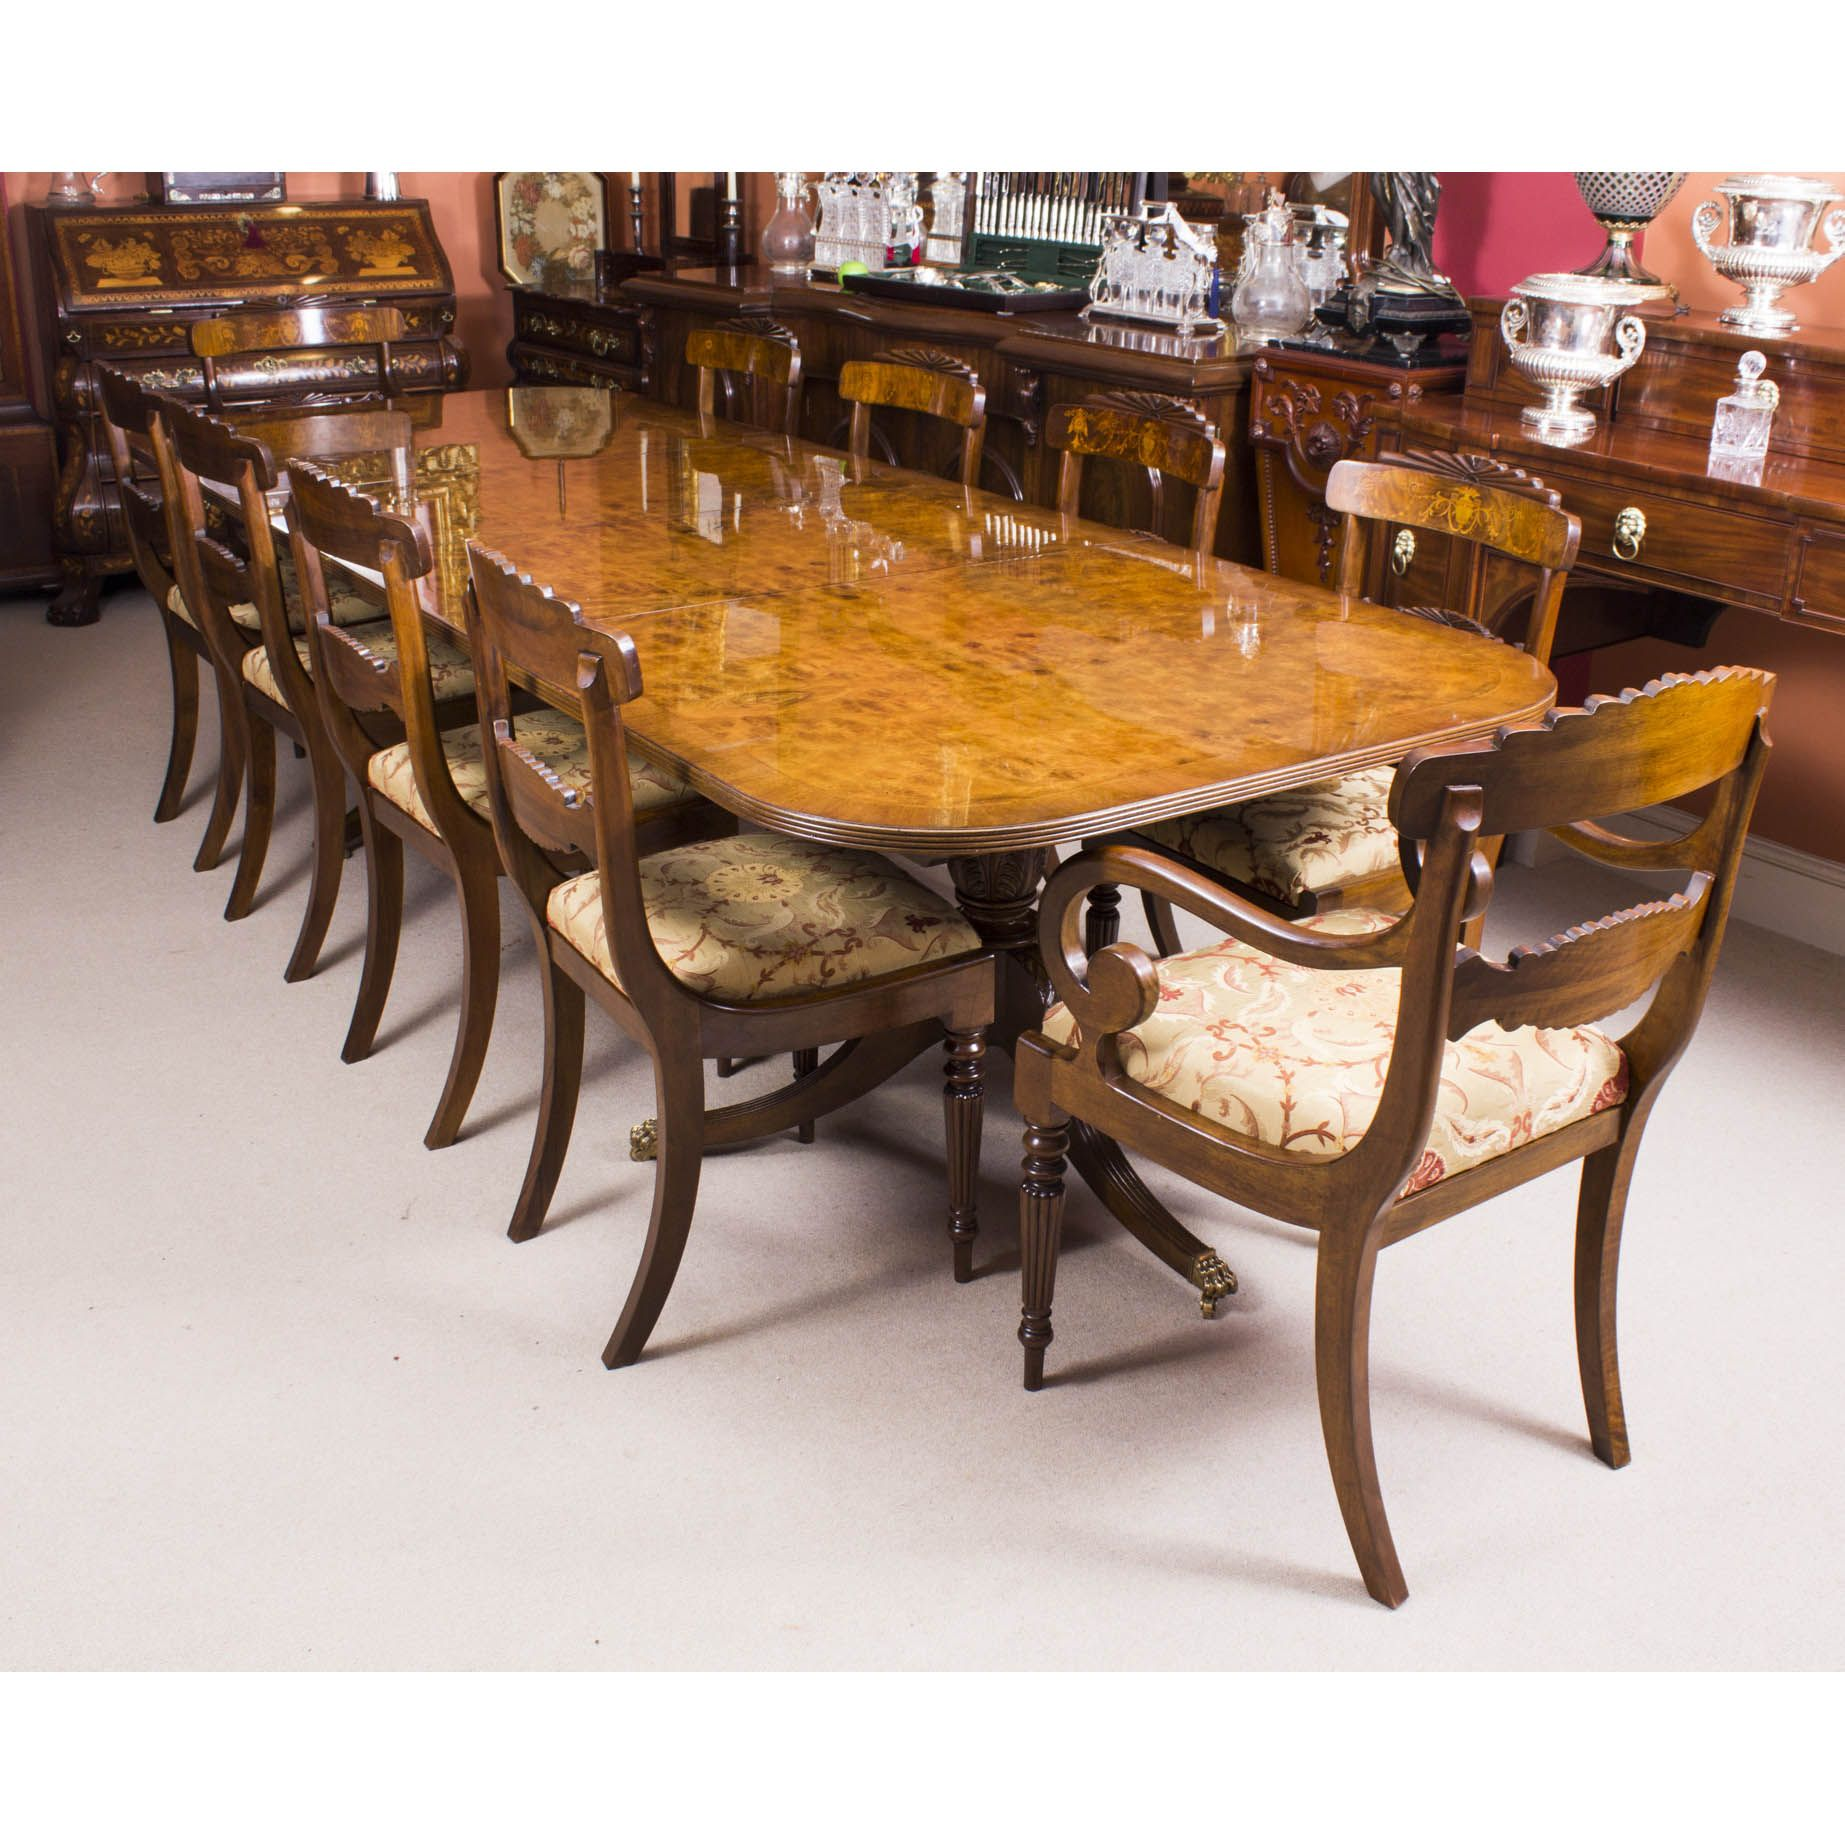 A Striking Handmade Regency Style Dining Table In Burr Walnut With Beauteous Handmade Dining Room Chairs Design Inspiration